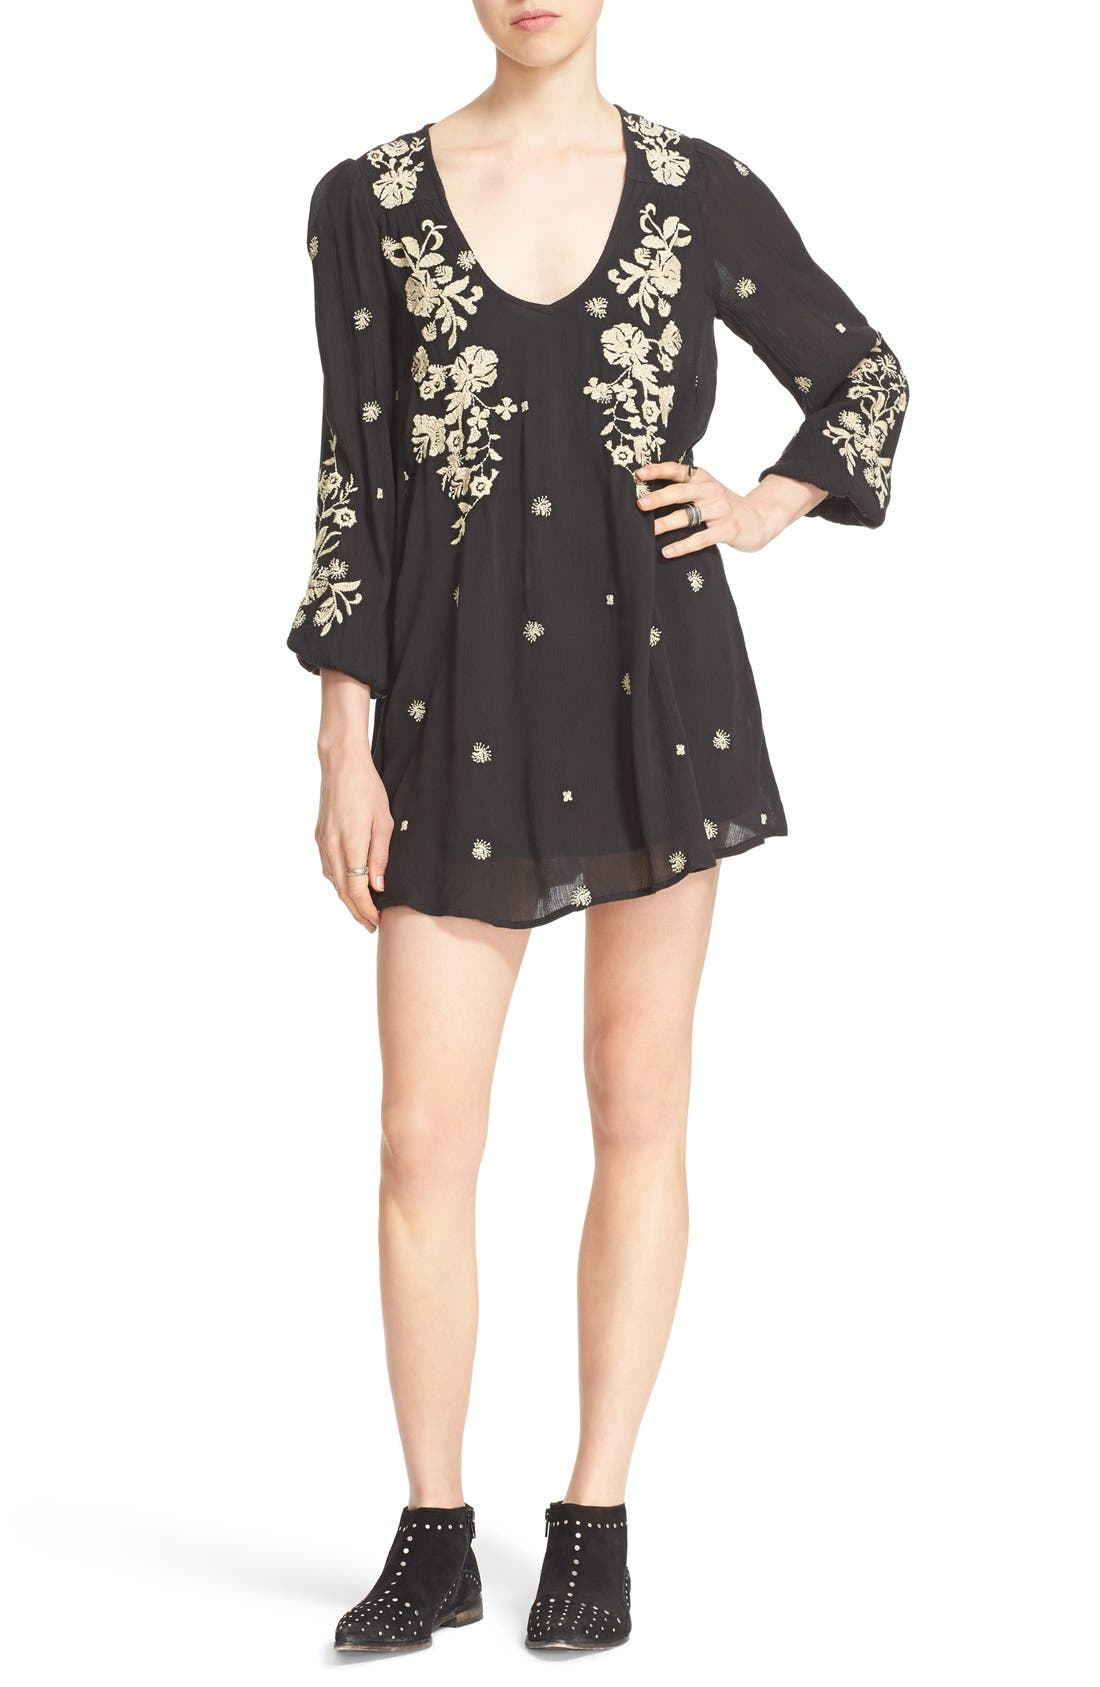 'Sweet Tennessee' Embroidered Minidress,                             Main thumbnail 1, color,                             019